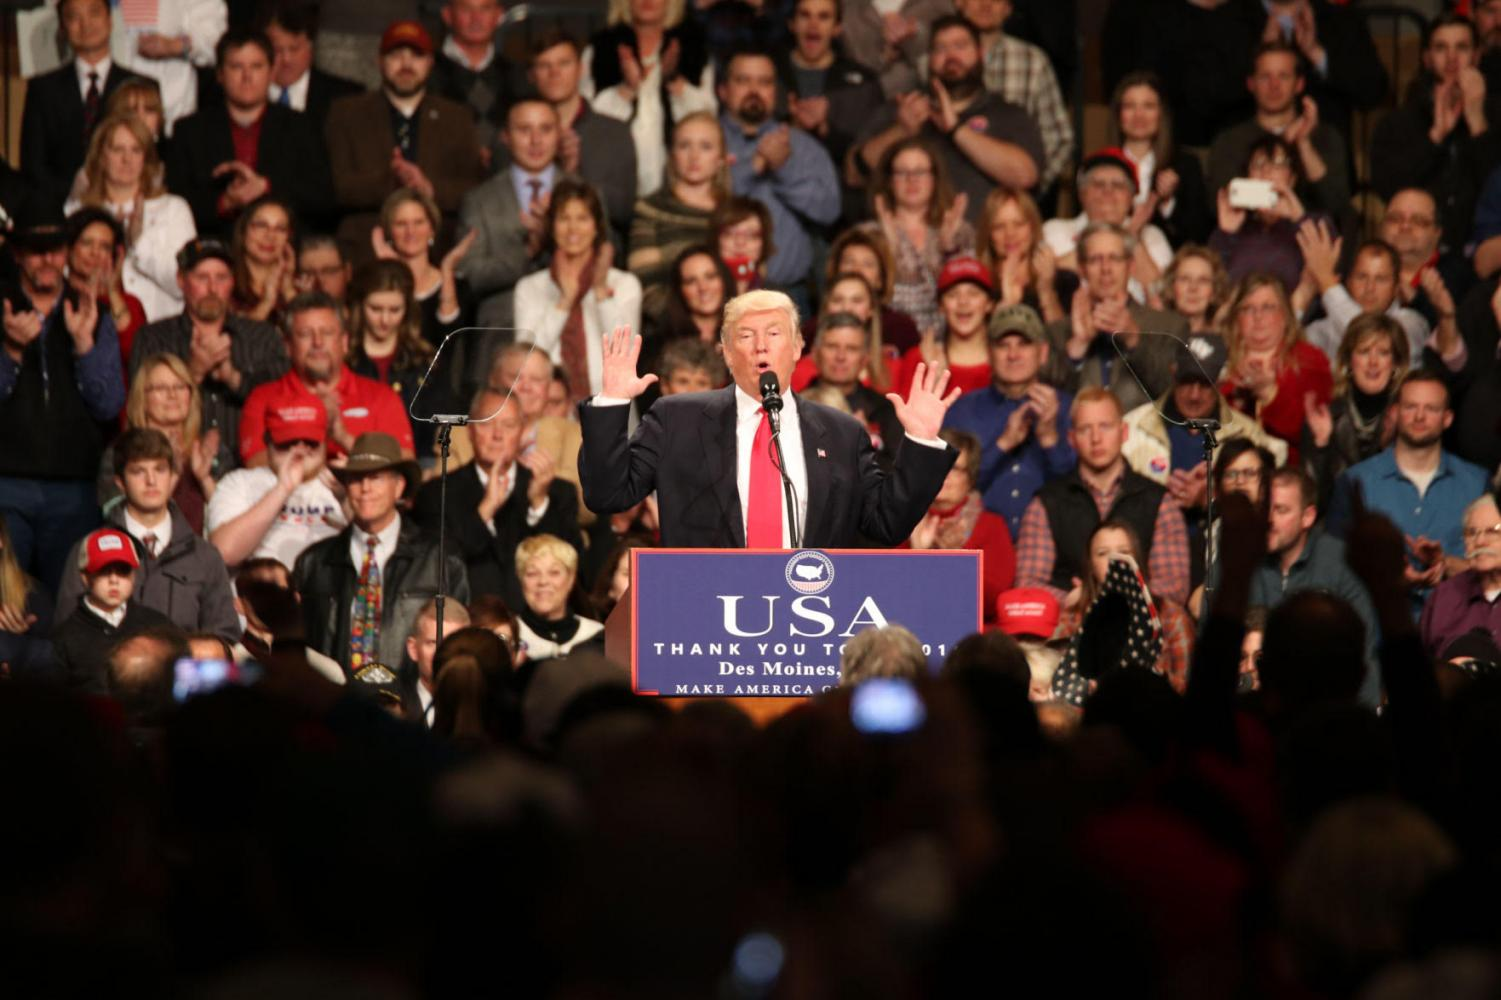 President Donald Trump speaks to supporters at a rally in Des Moines, Iowa.